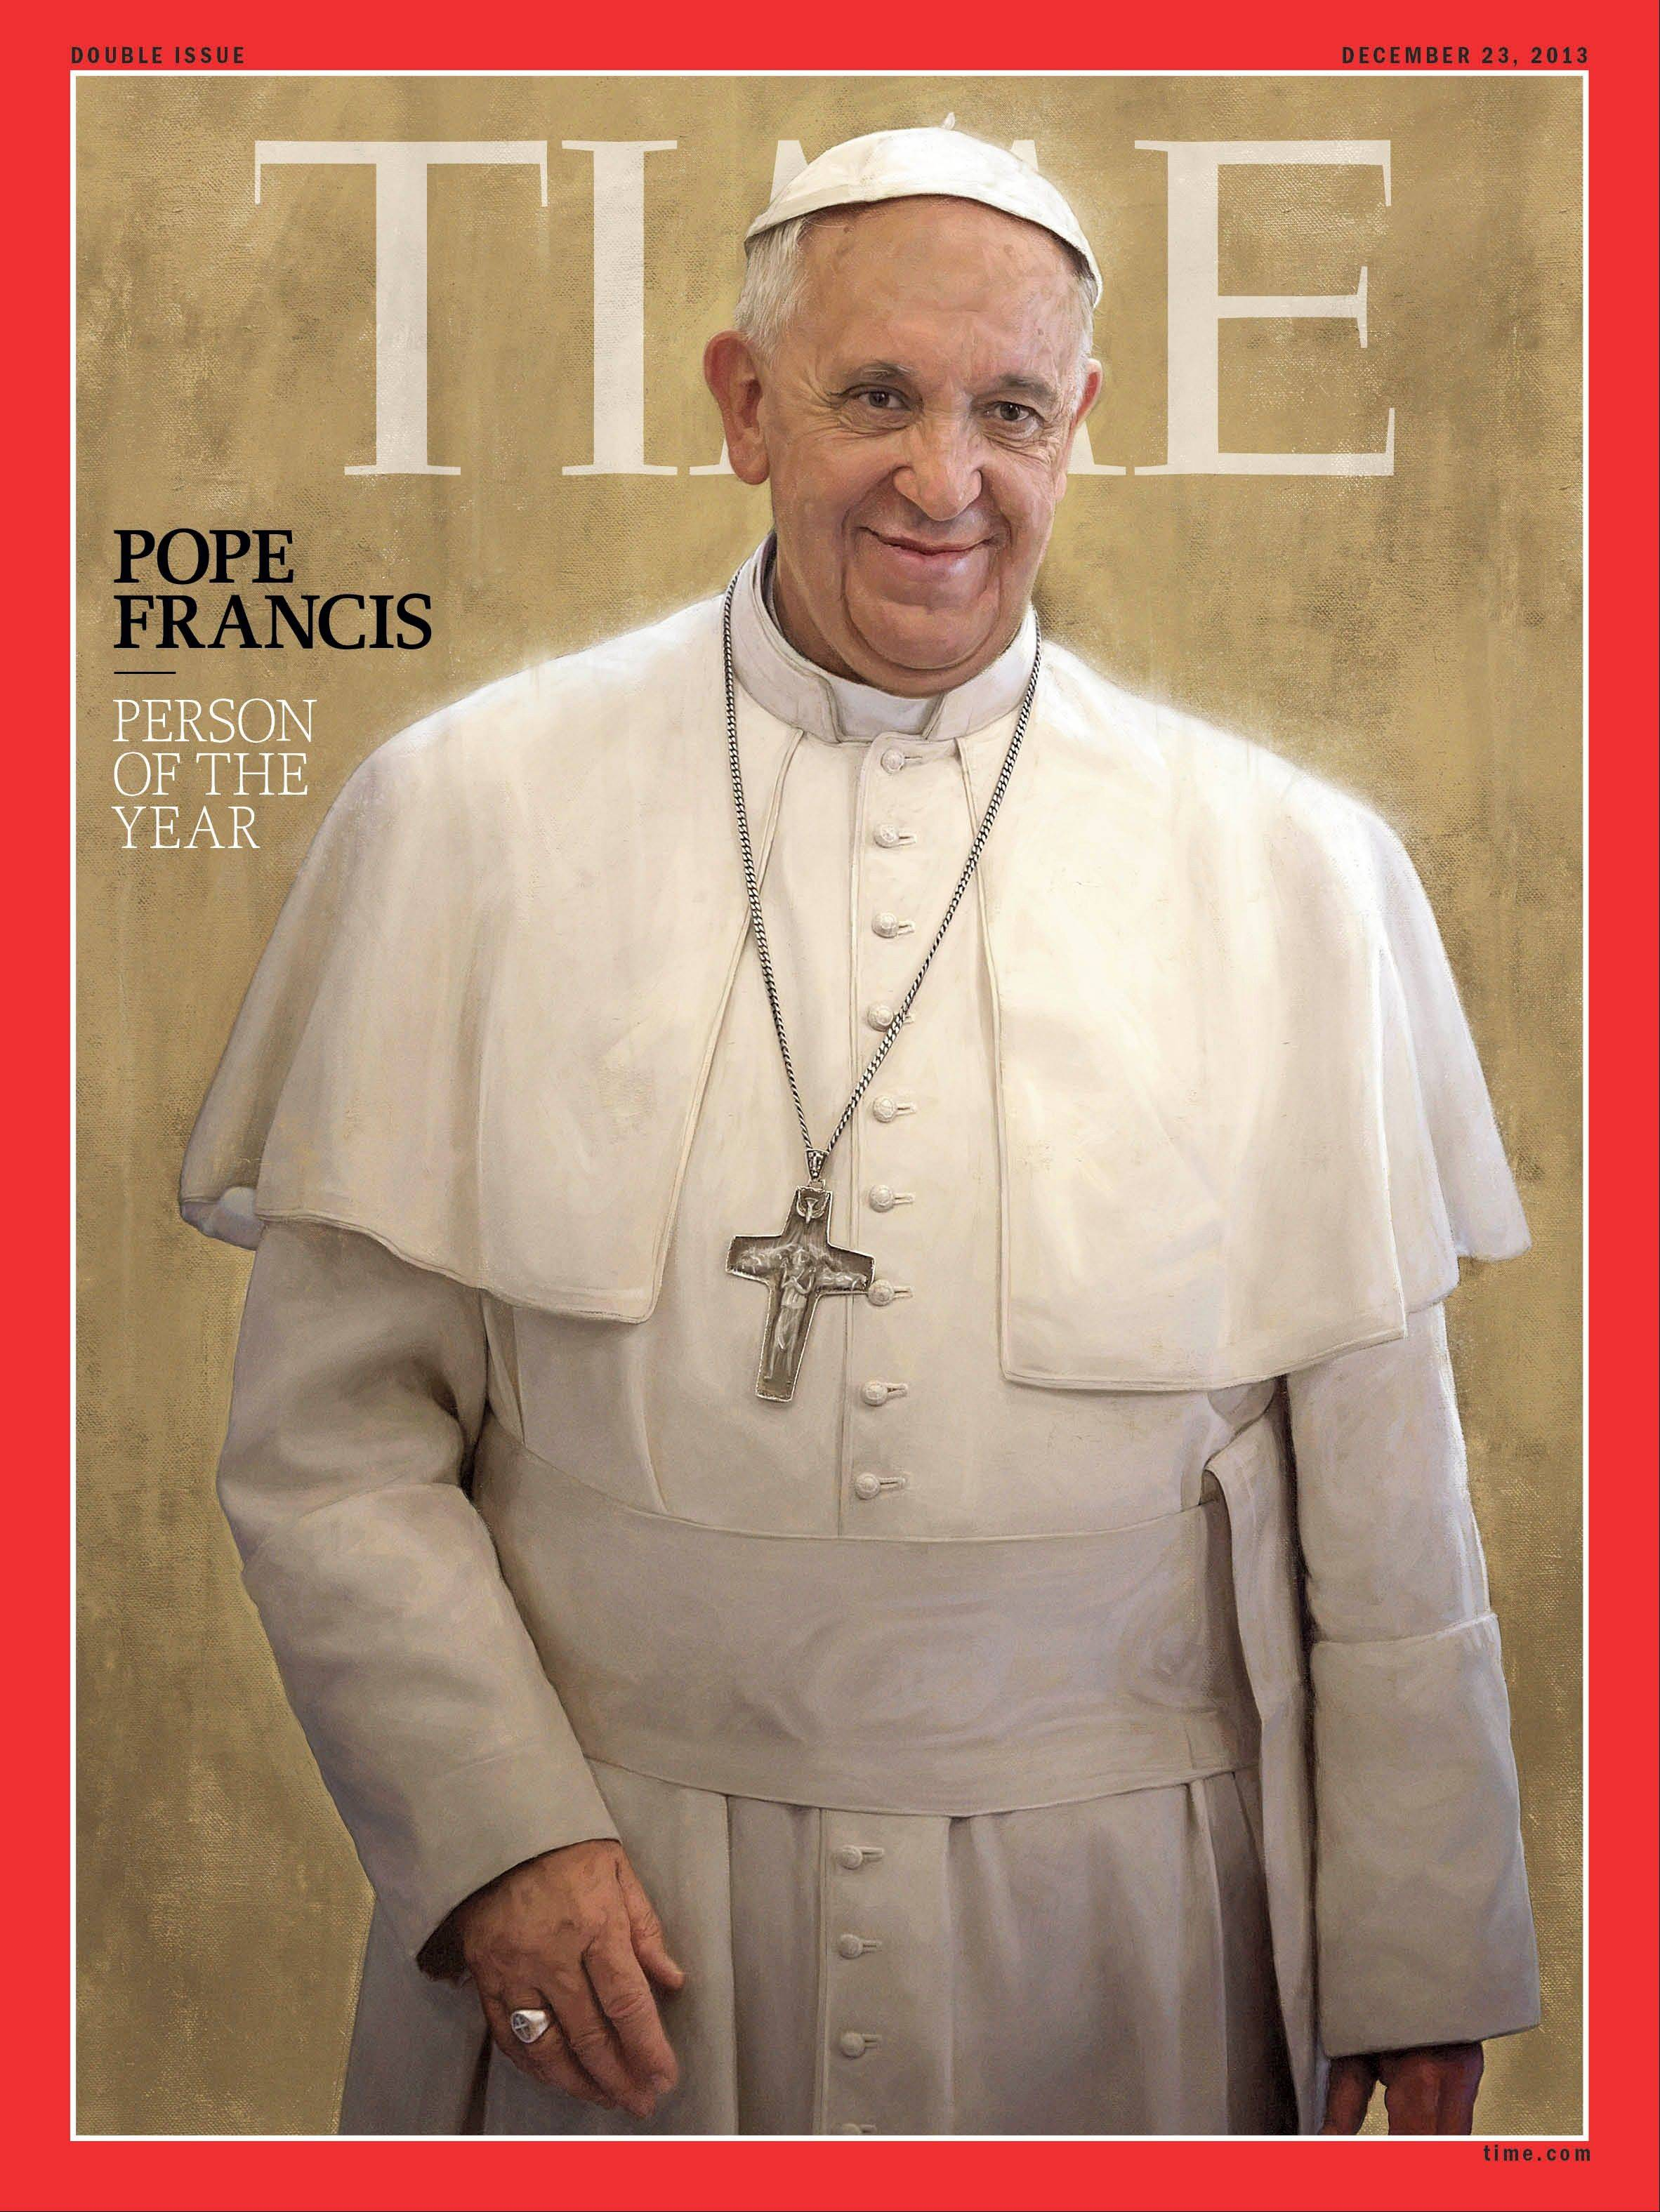 Pope Francis, Time magazine's 2013 Person of the Year.